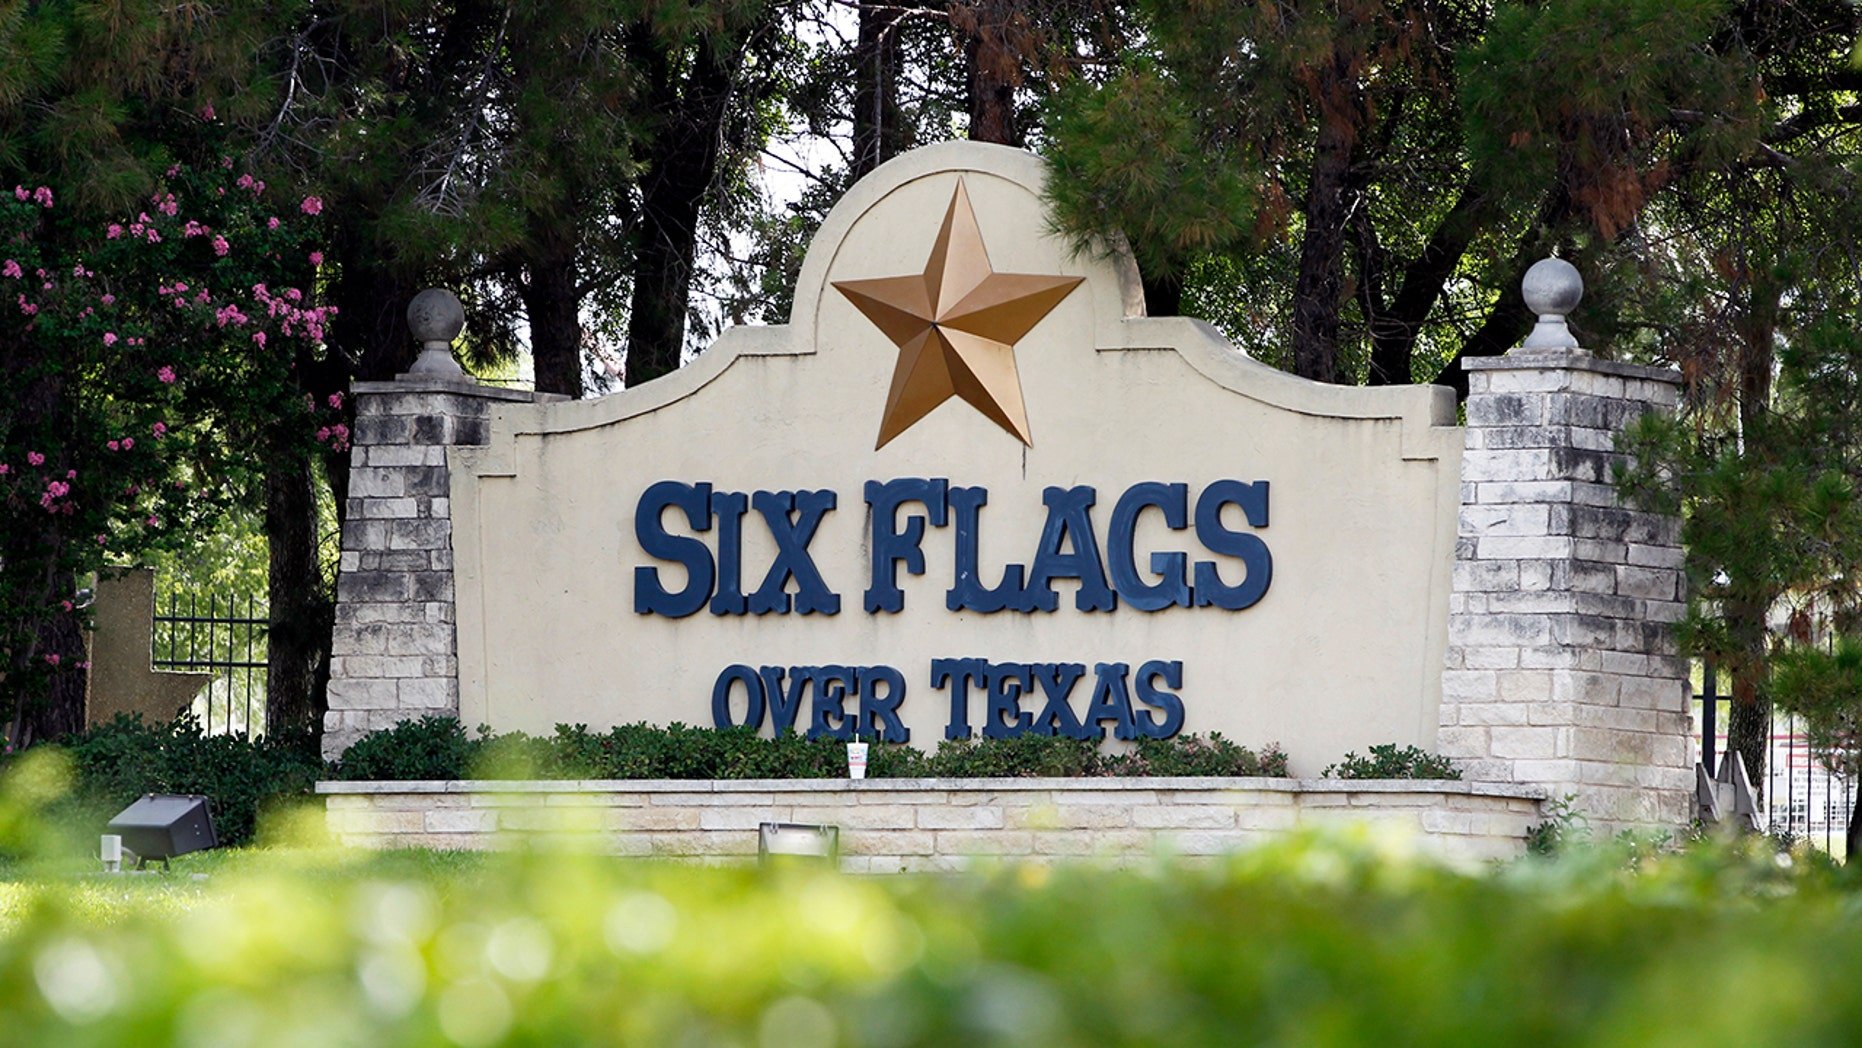 The Six Flags Over Texas theme park continues to fly a Confederate flag over their entrance